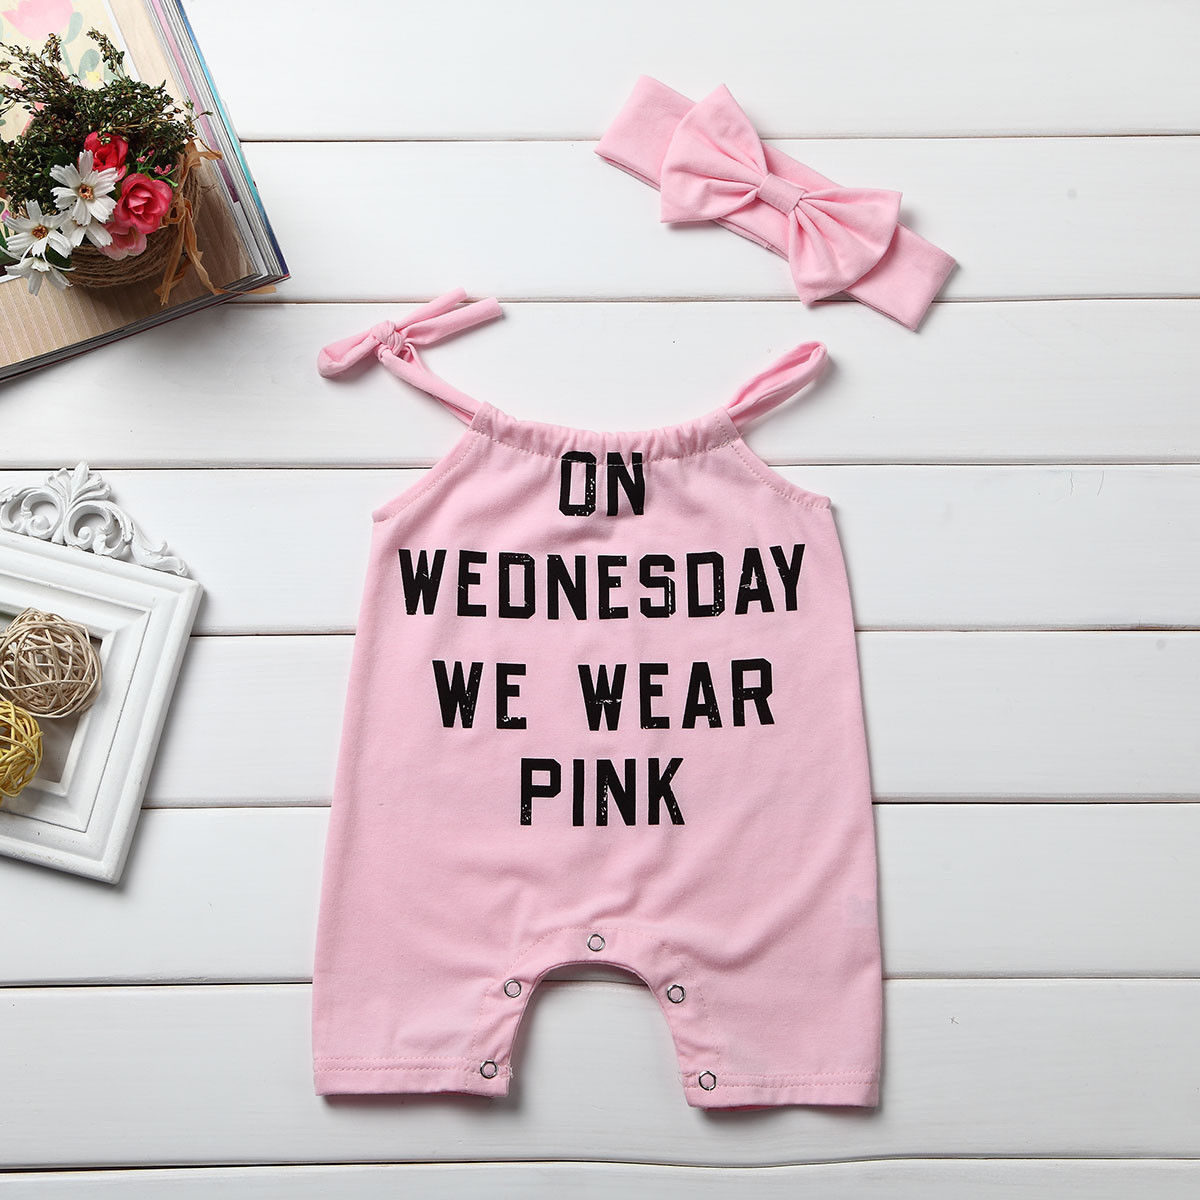 2017 New Cute Pink Kids Newborn Baby Girl Summer Sleeveless Romper Jumpsuit Outfit Set Clothes Headband baby clothing summer infant newborn baby romper short sleeve girl boys jumpsuit new born baby clothes